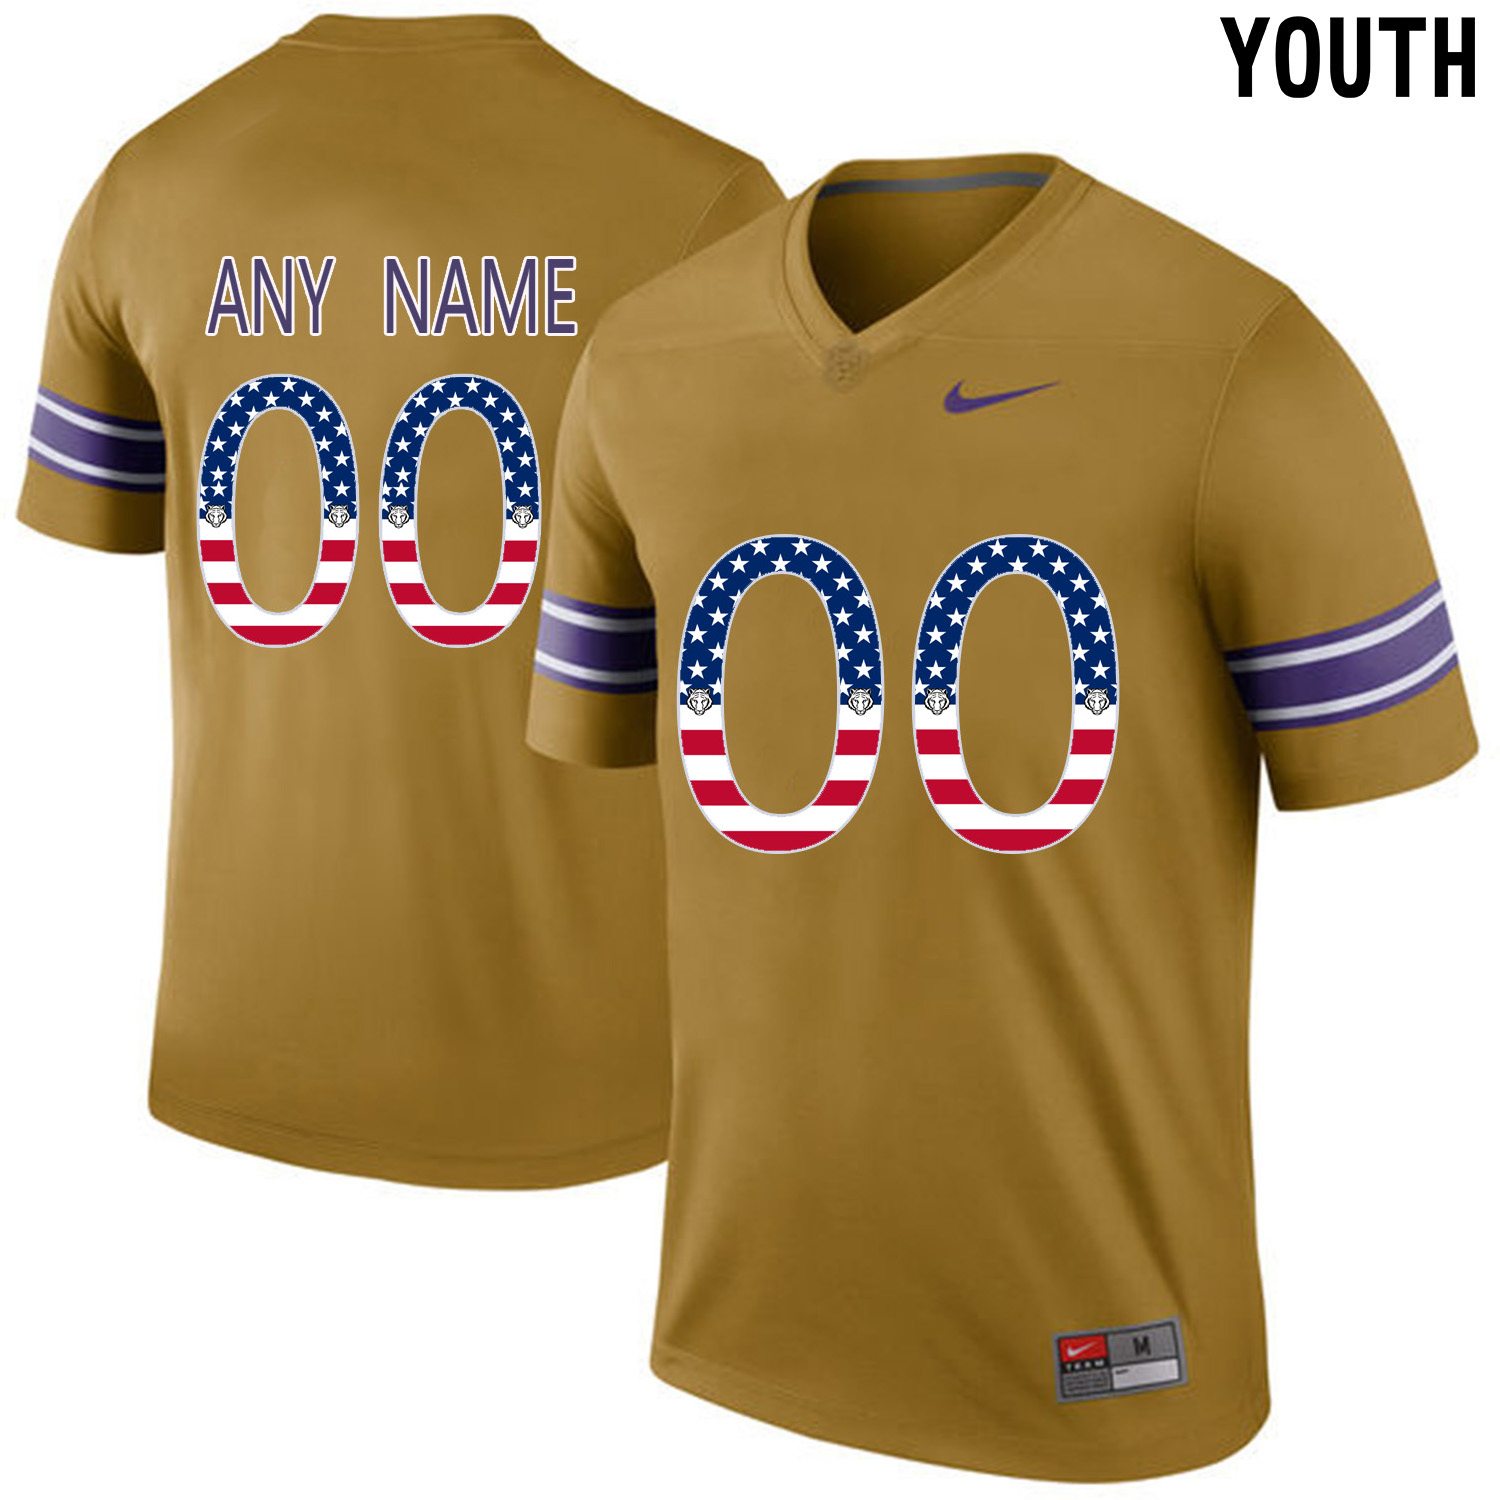 US Flag Fashion Youth LSU Tigers Customized College Football Limited Throwback Legand Jersey Gridiron Gold